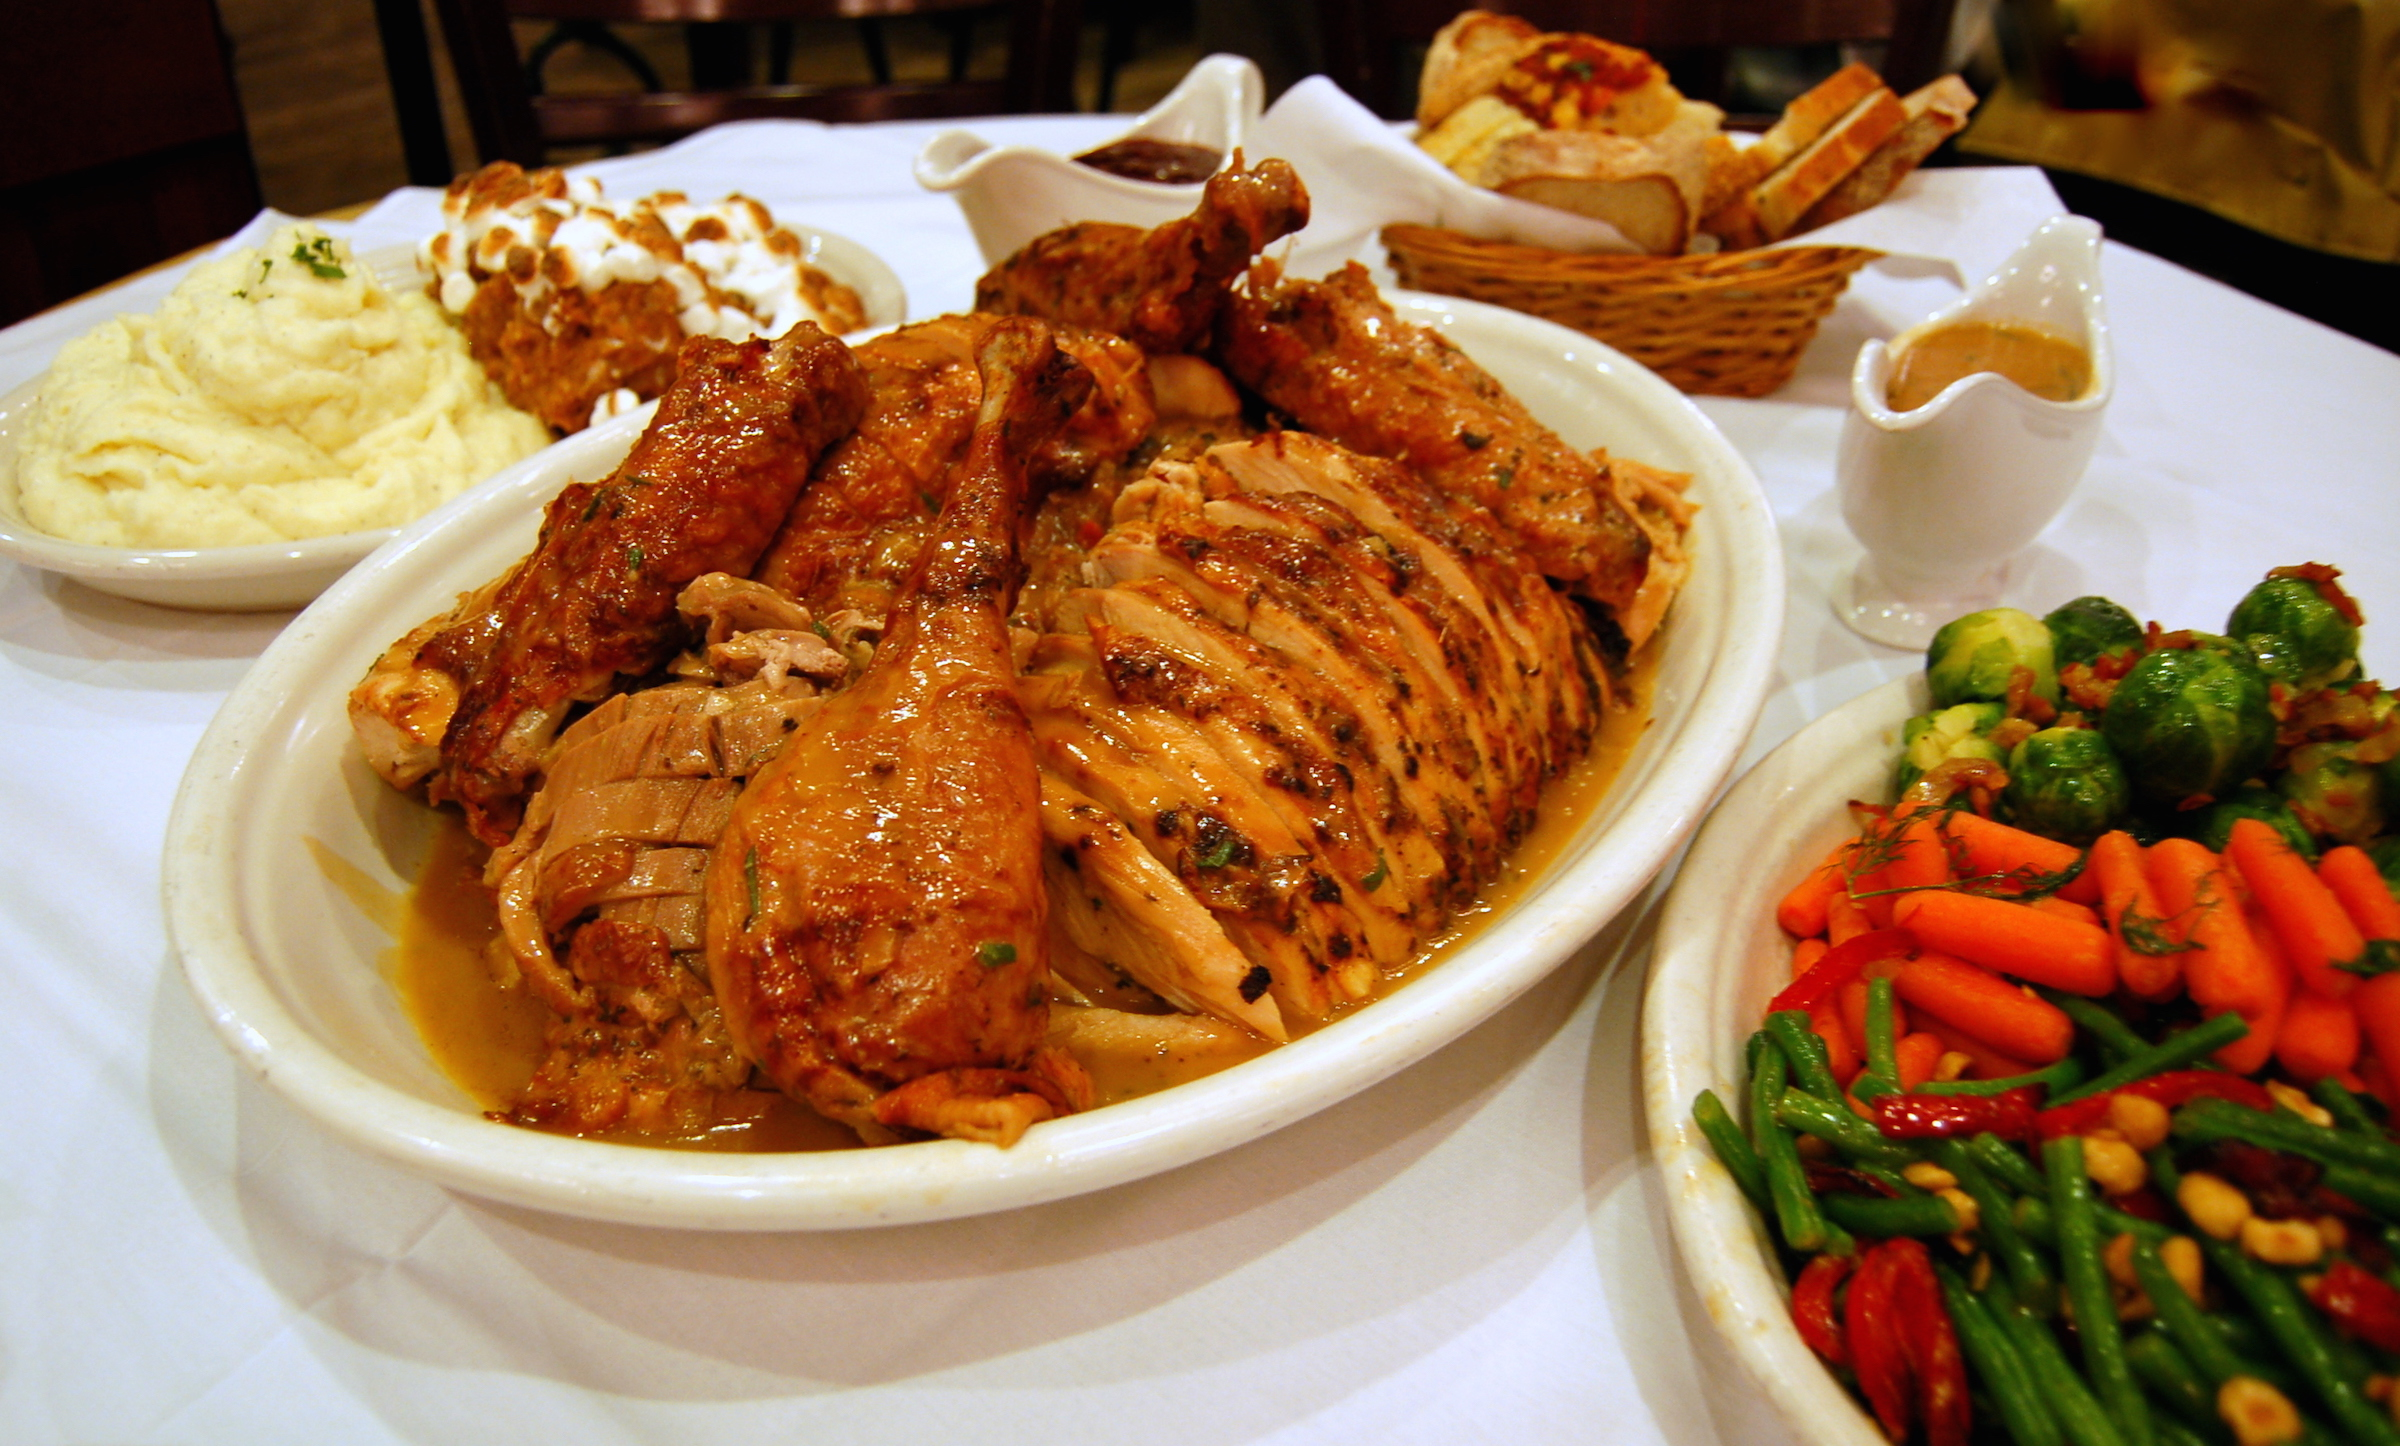 Grab an entire Thanksgiving meal for your family at Carmine's. Photo courtesy of Carmine's